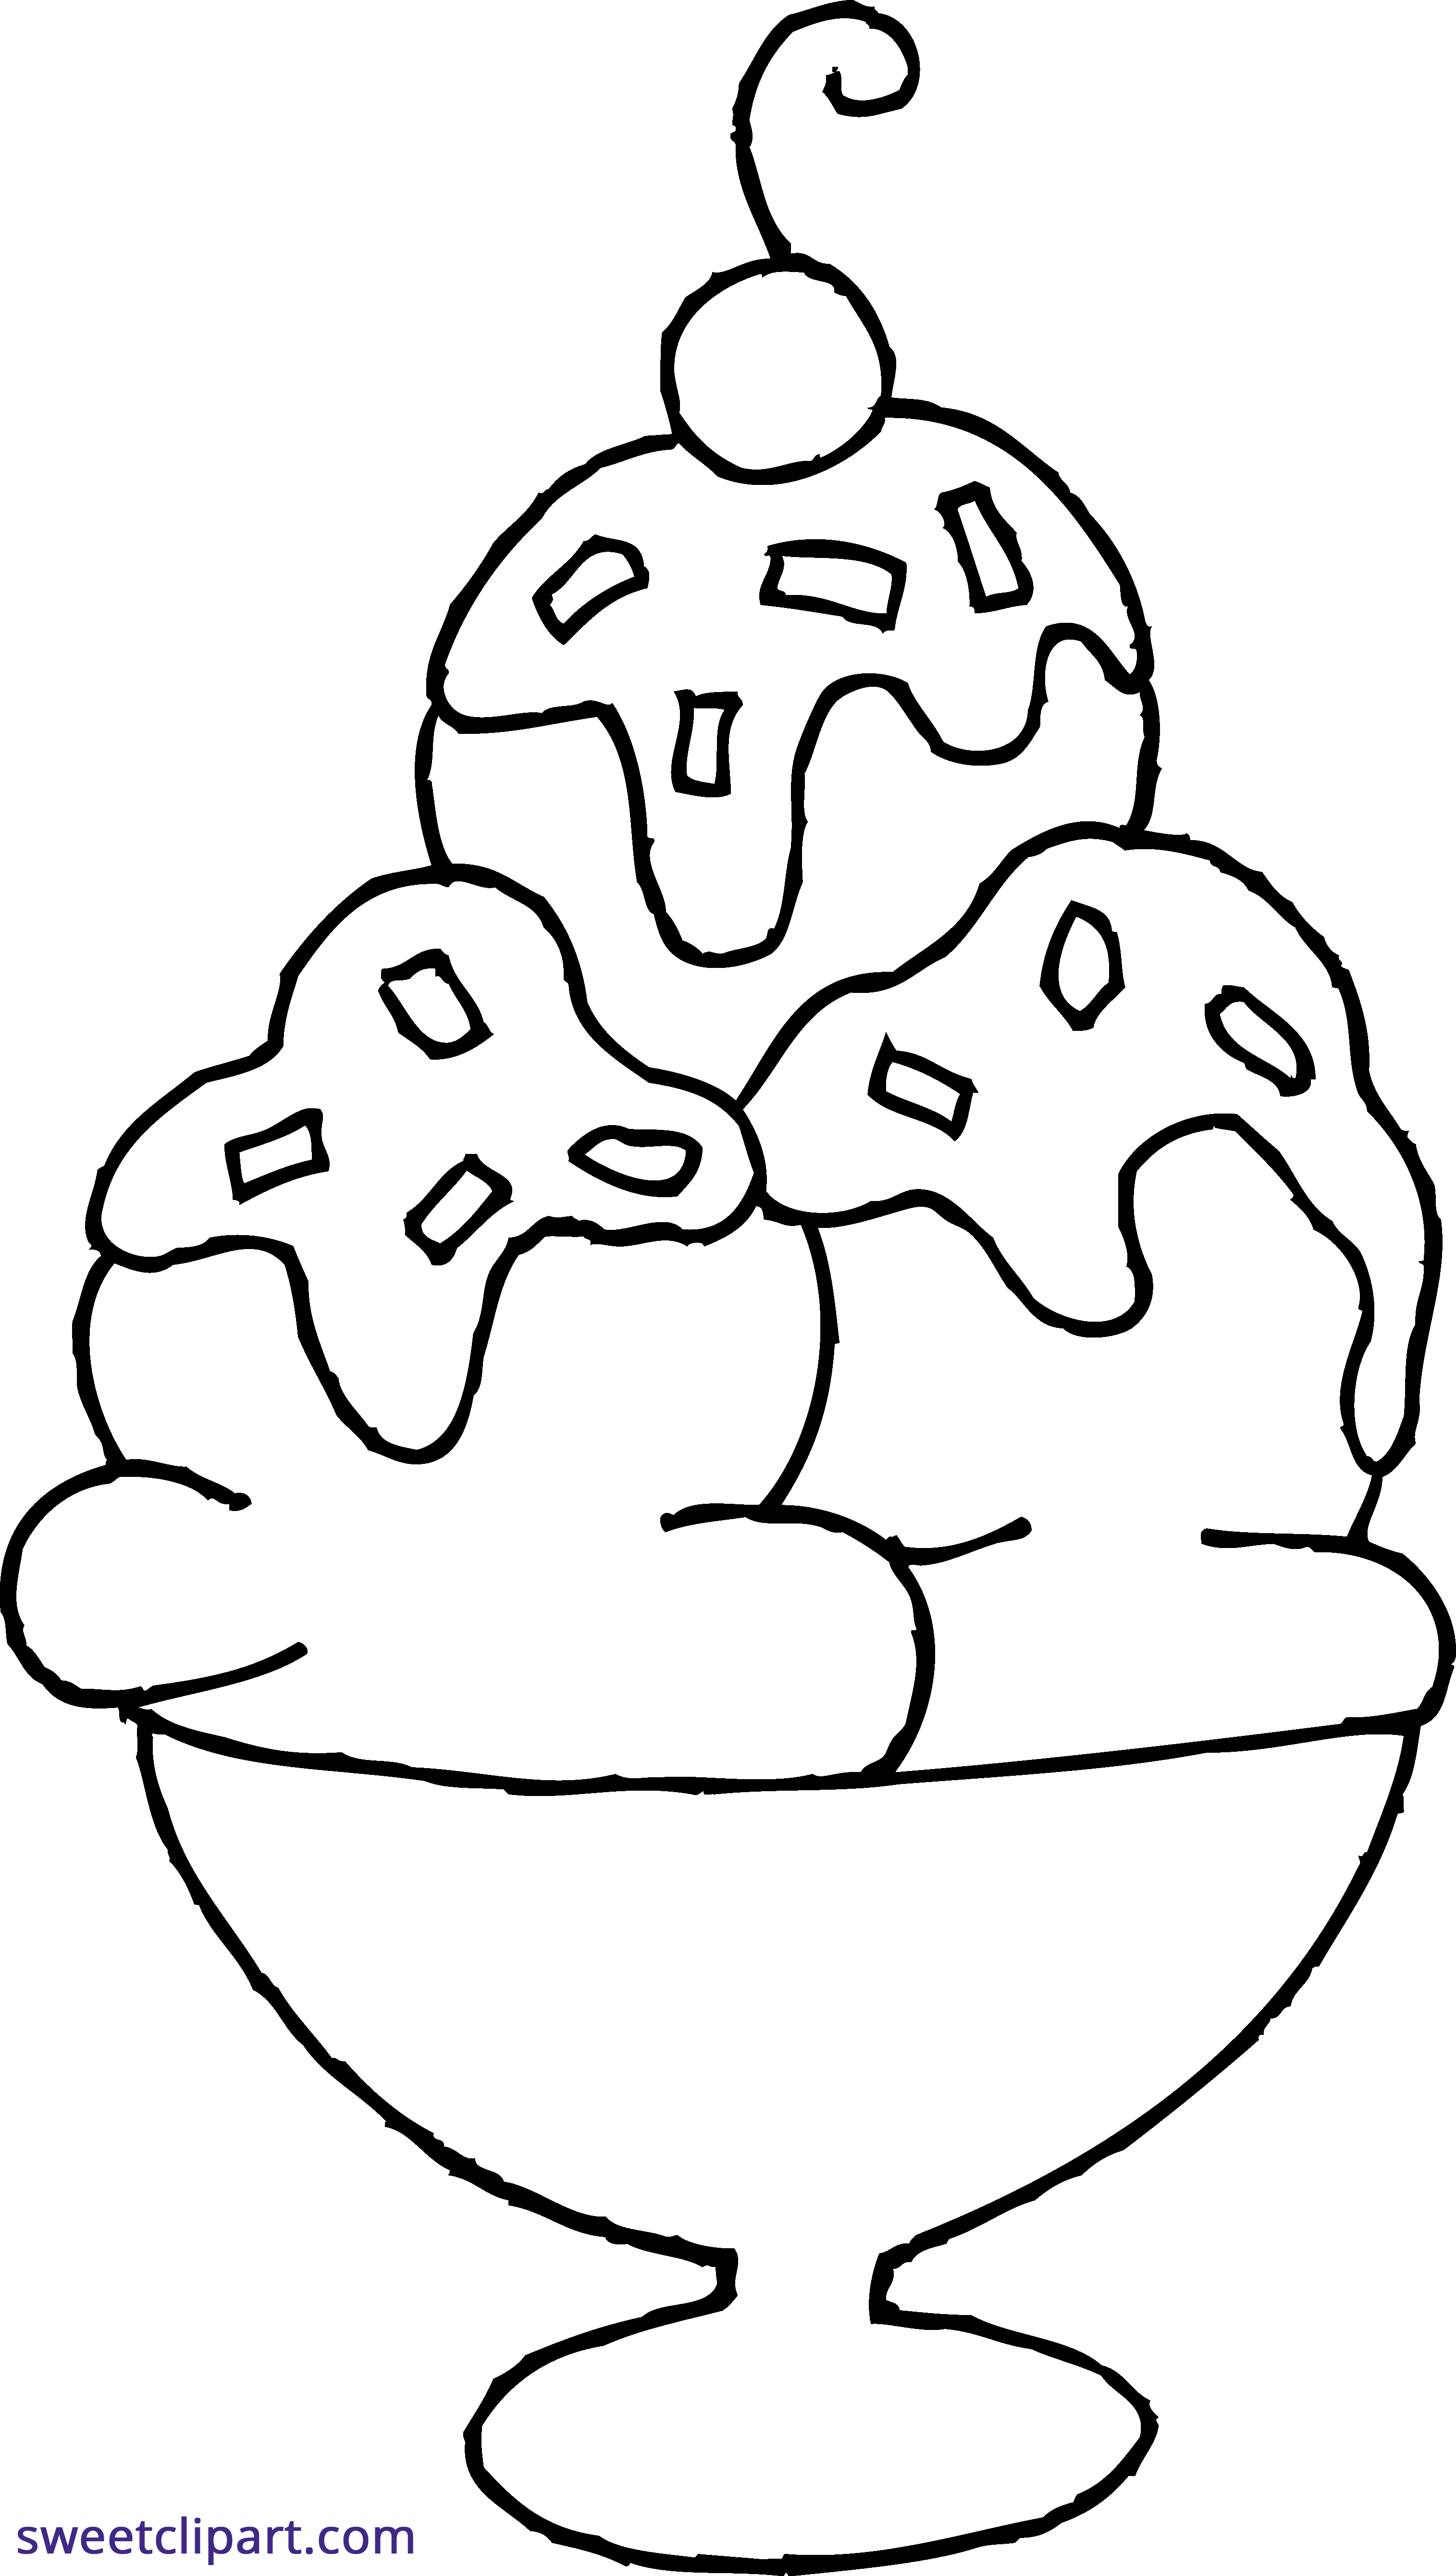 ice cream sundae coloring page clipart sweet clip art